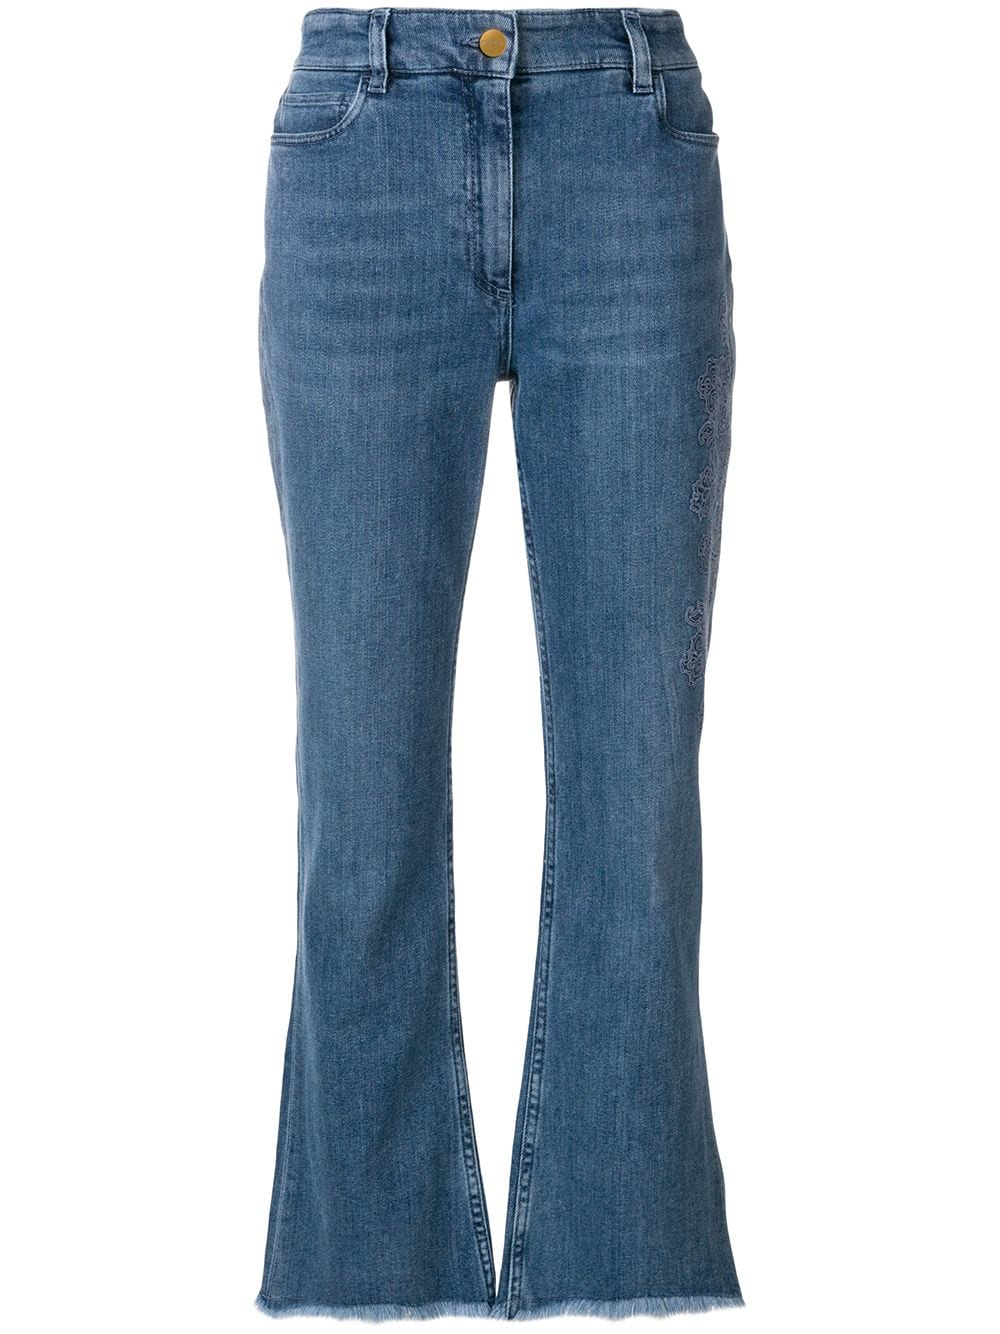 0601e647 Embroidered High-rise Jeans